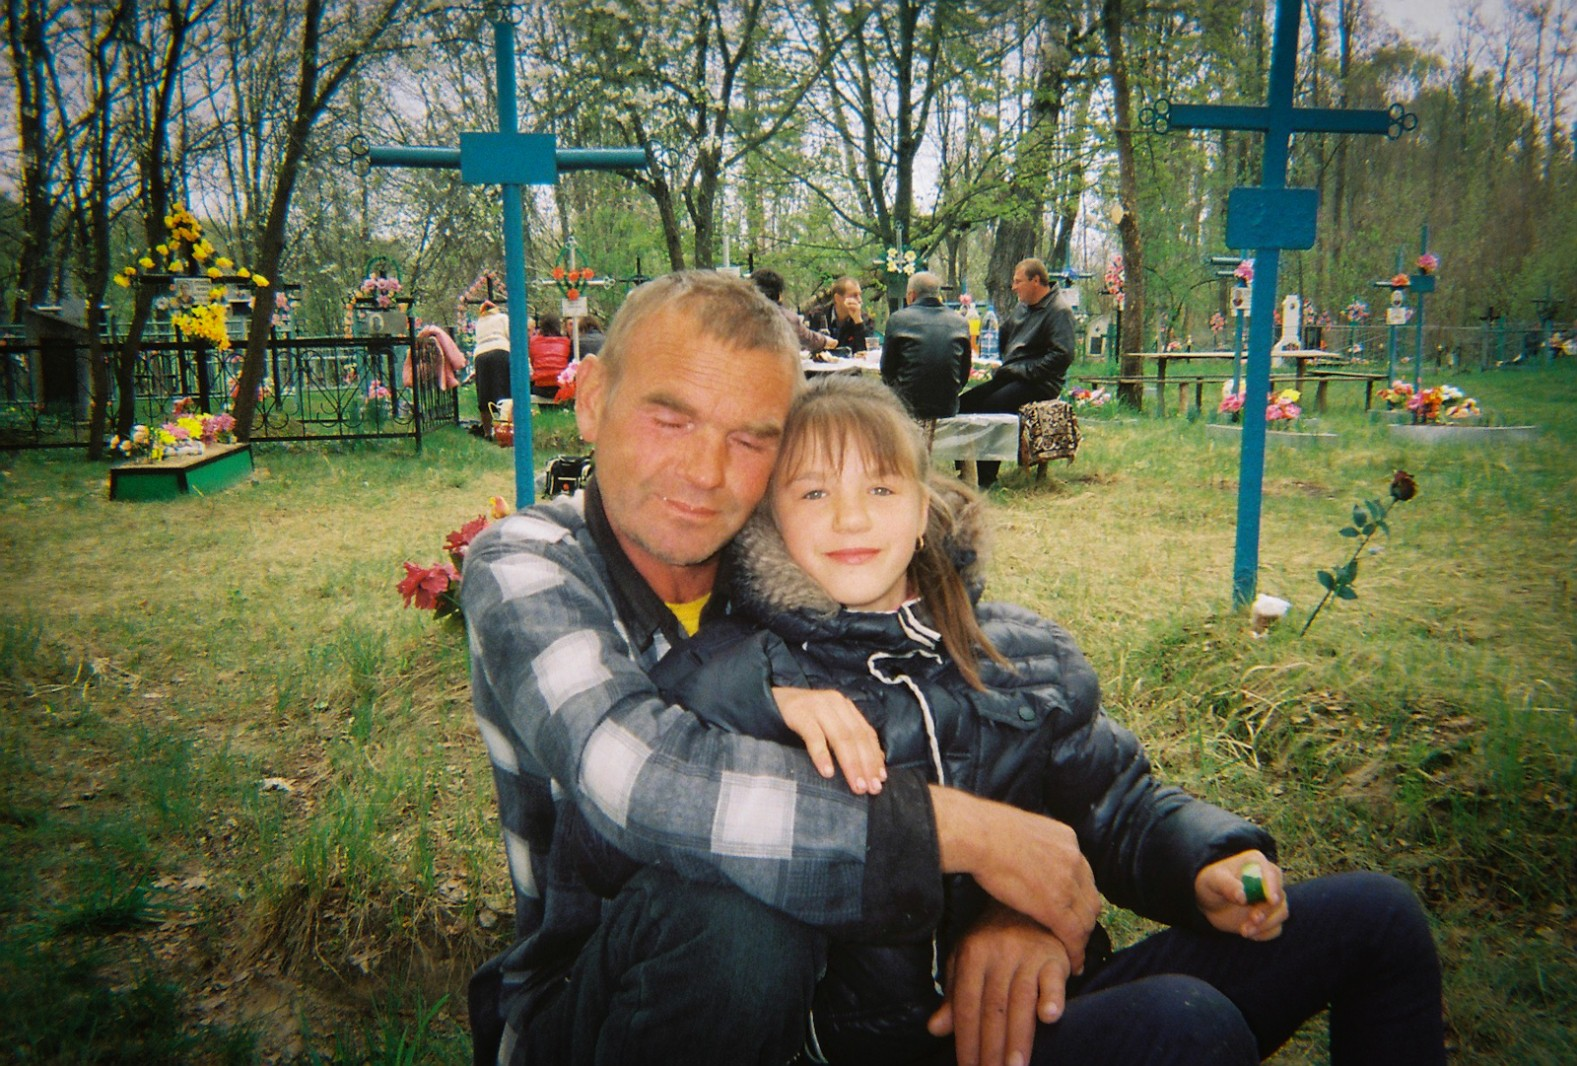 A father and daughter at a local cemetery during Easter celebrations. A table of villagers sit in the background eating and drinking